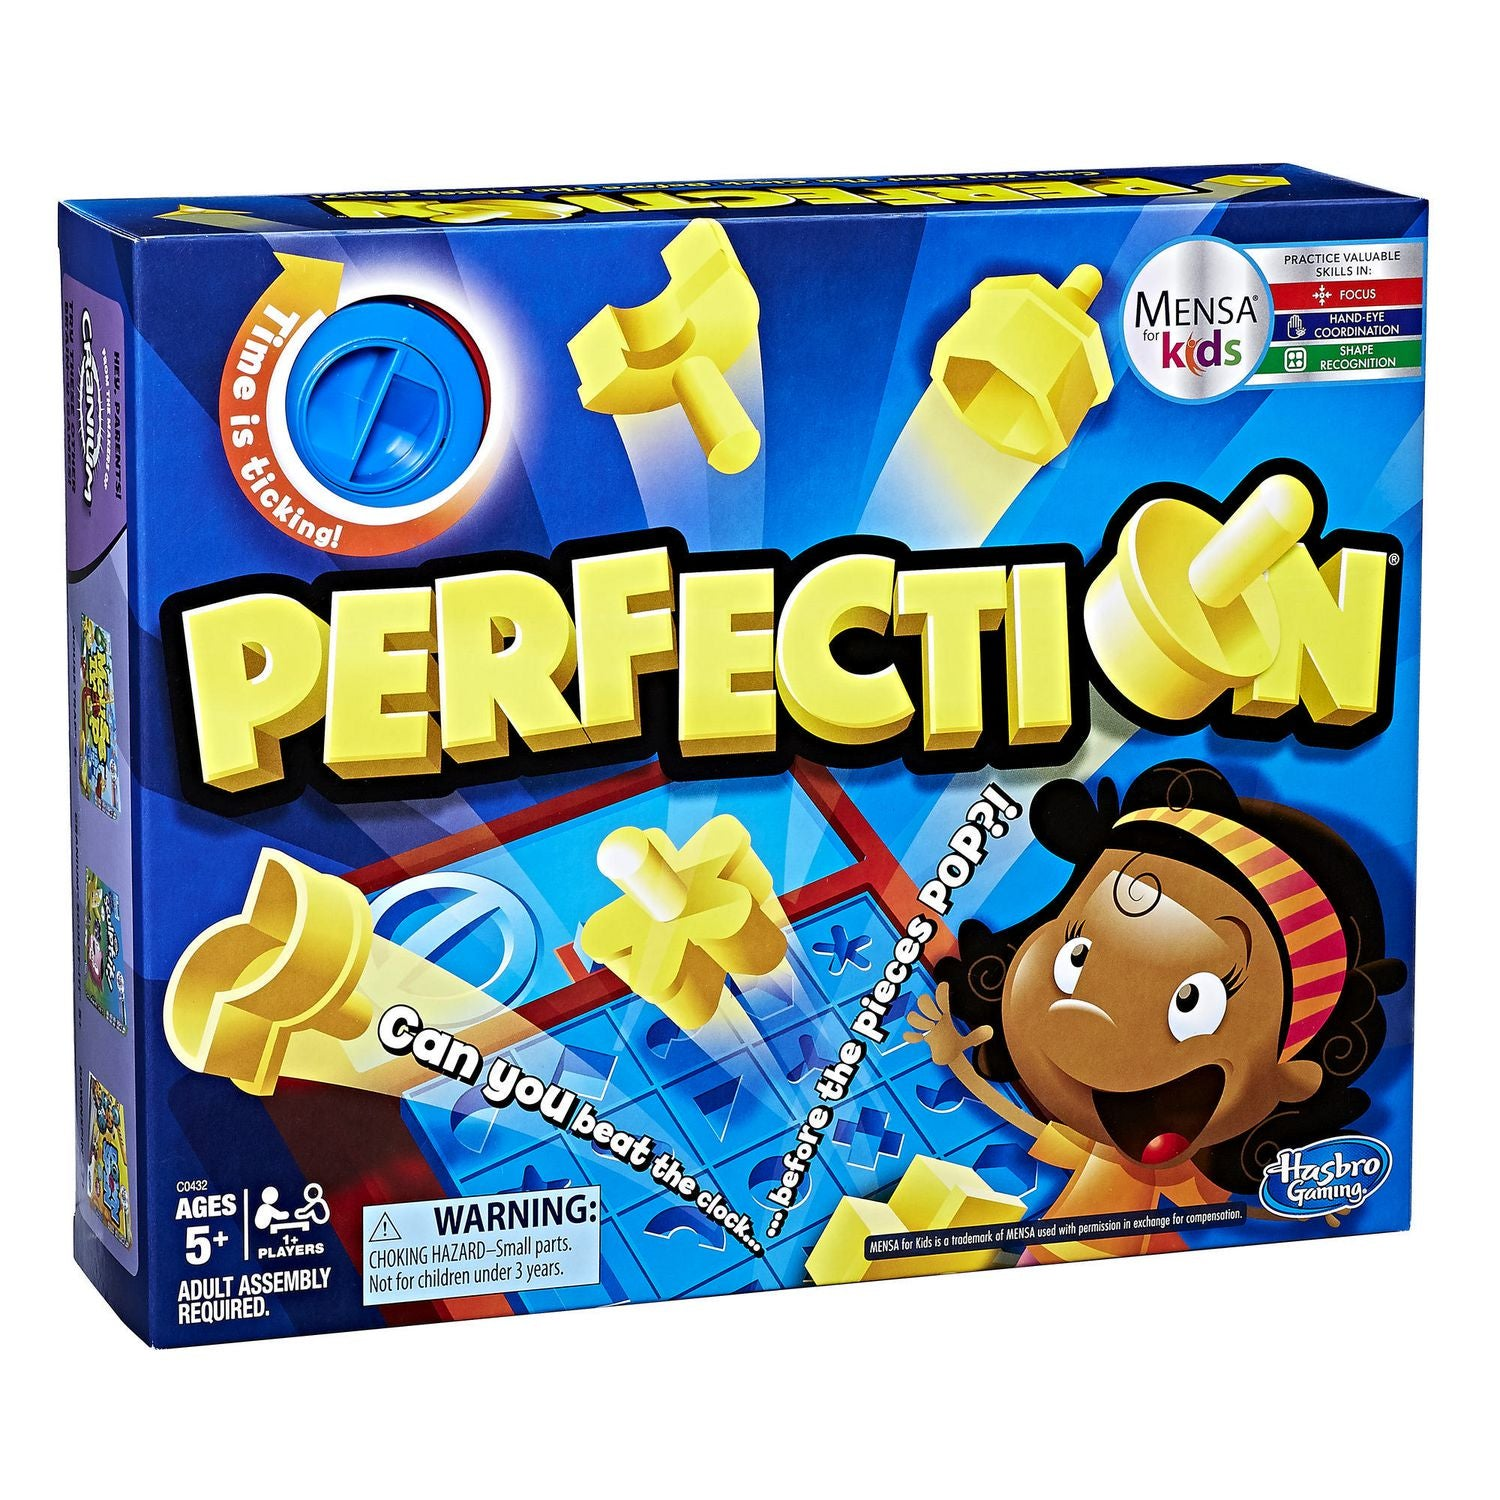 PERFECTION BOARD GAMES